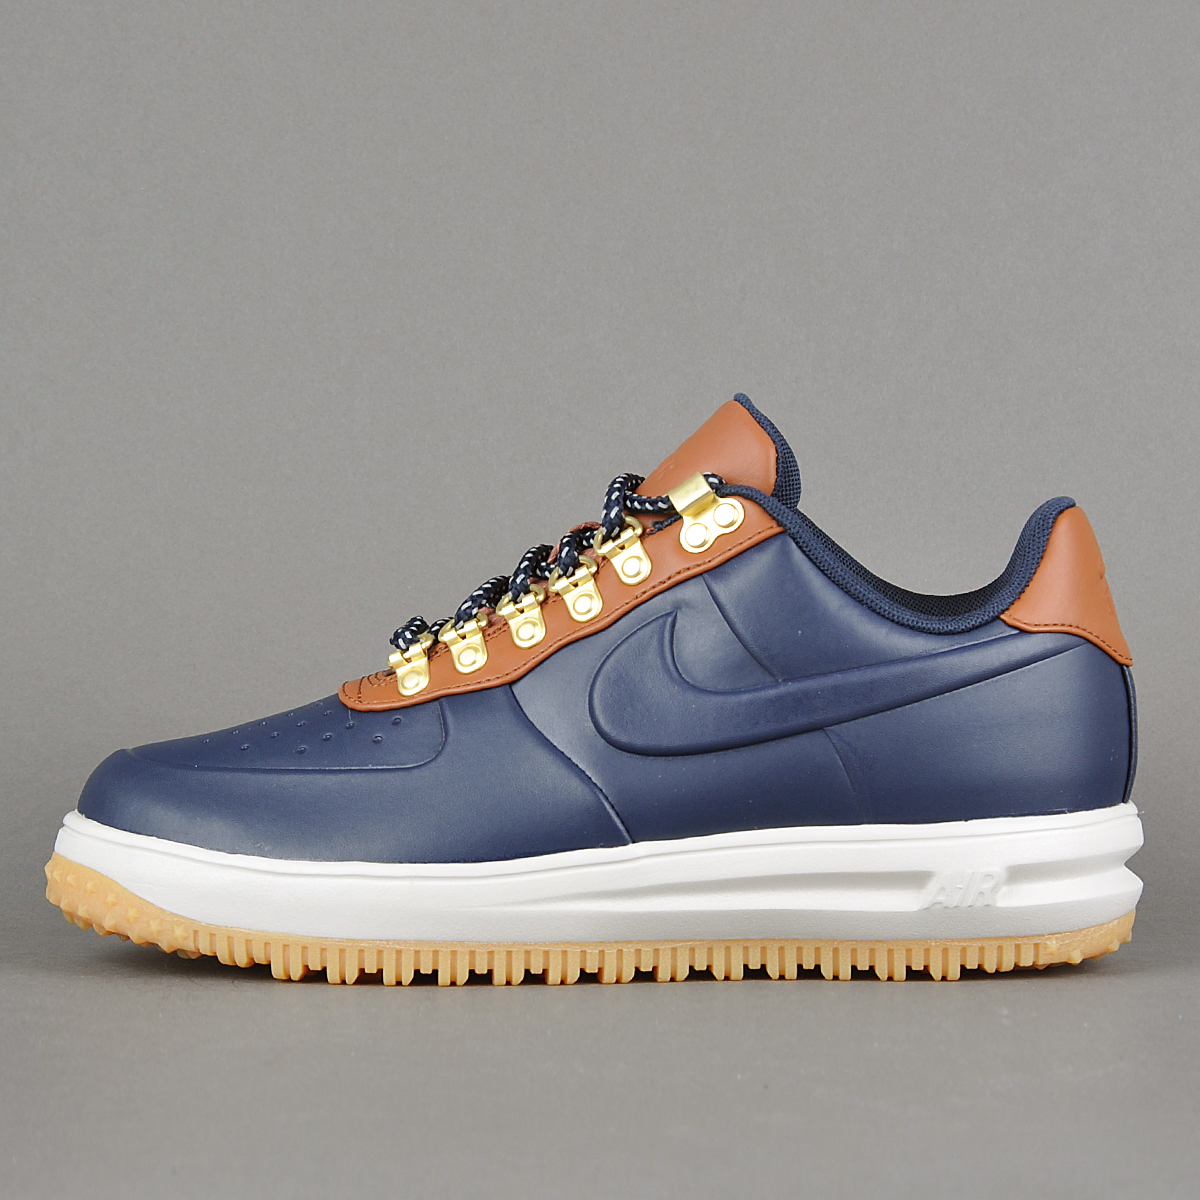 8585df8a84be ... new style nike lunar force 1 duckboot low obsidian saddle brown.